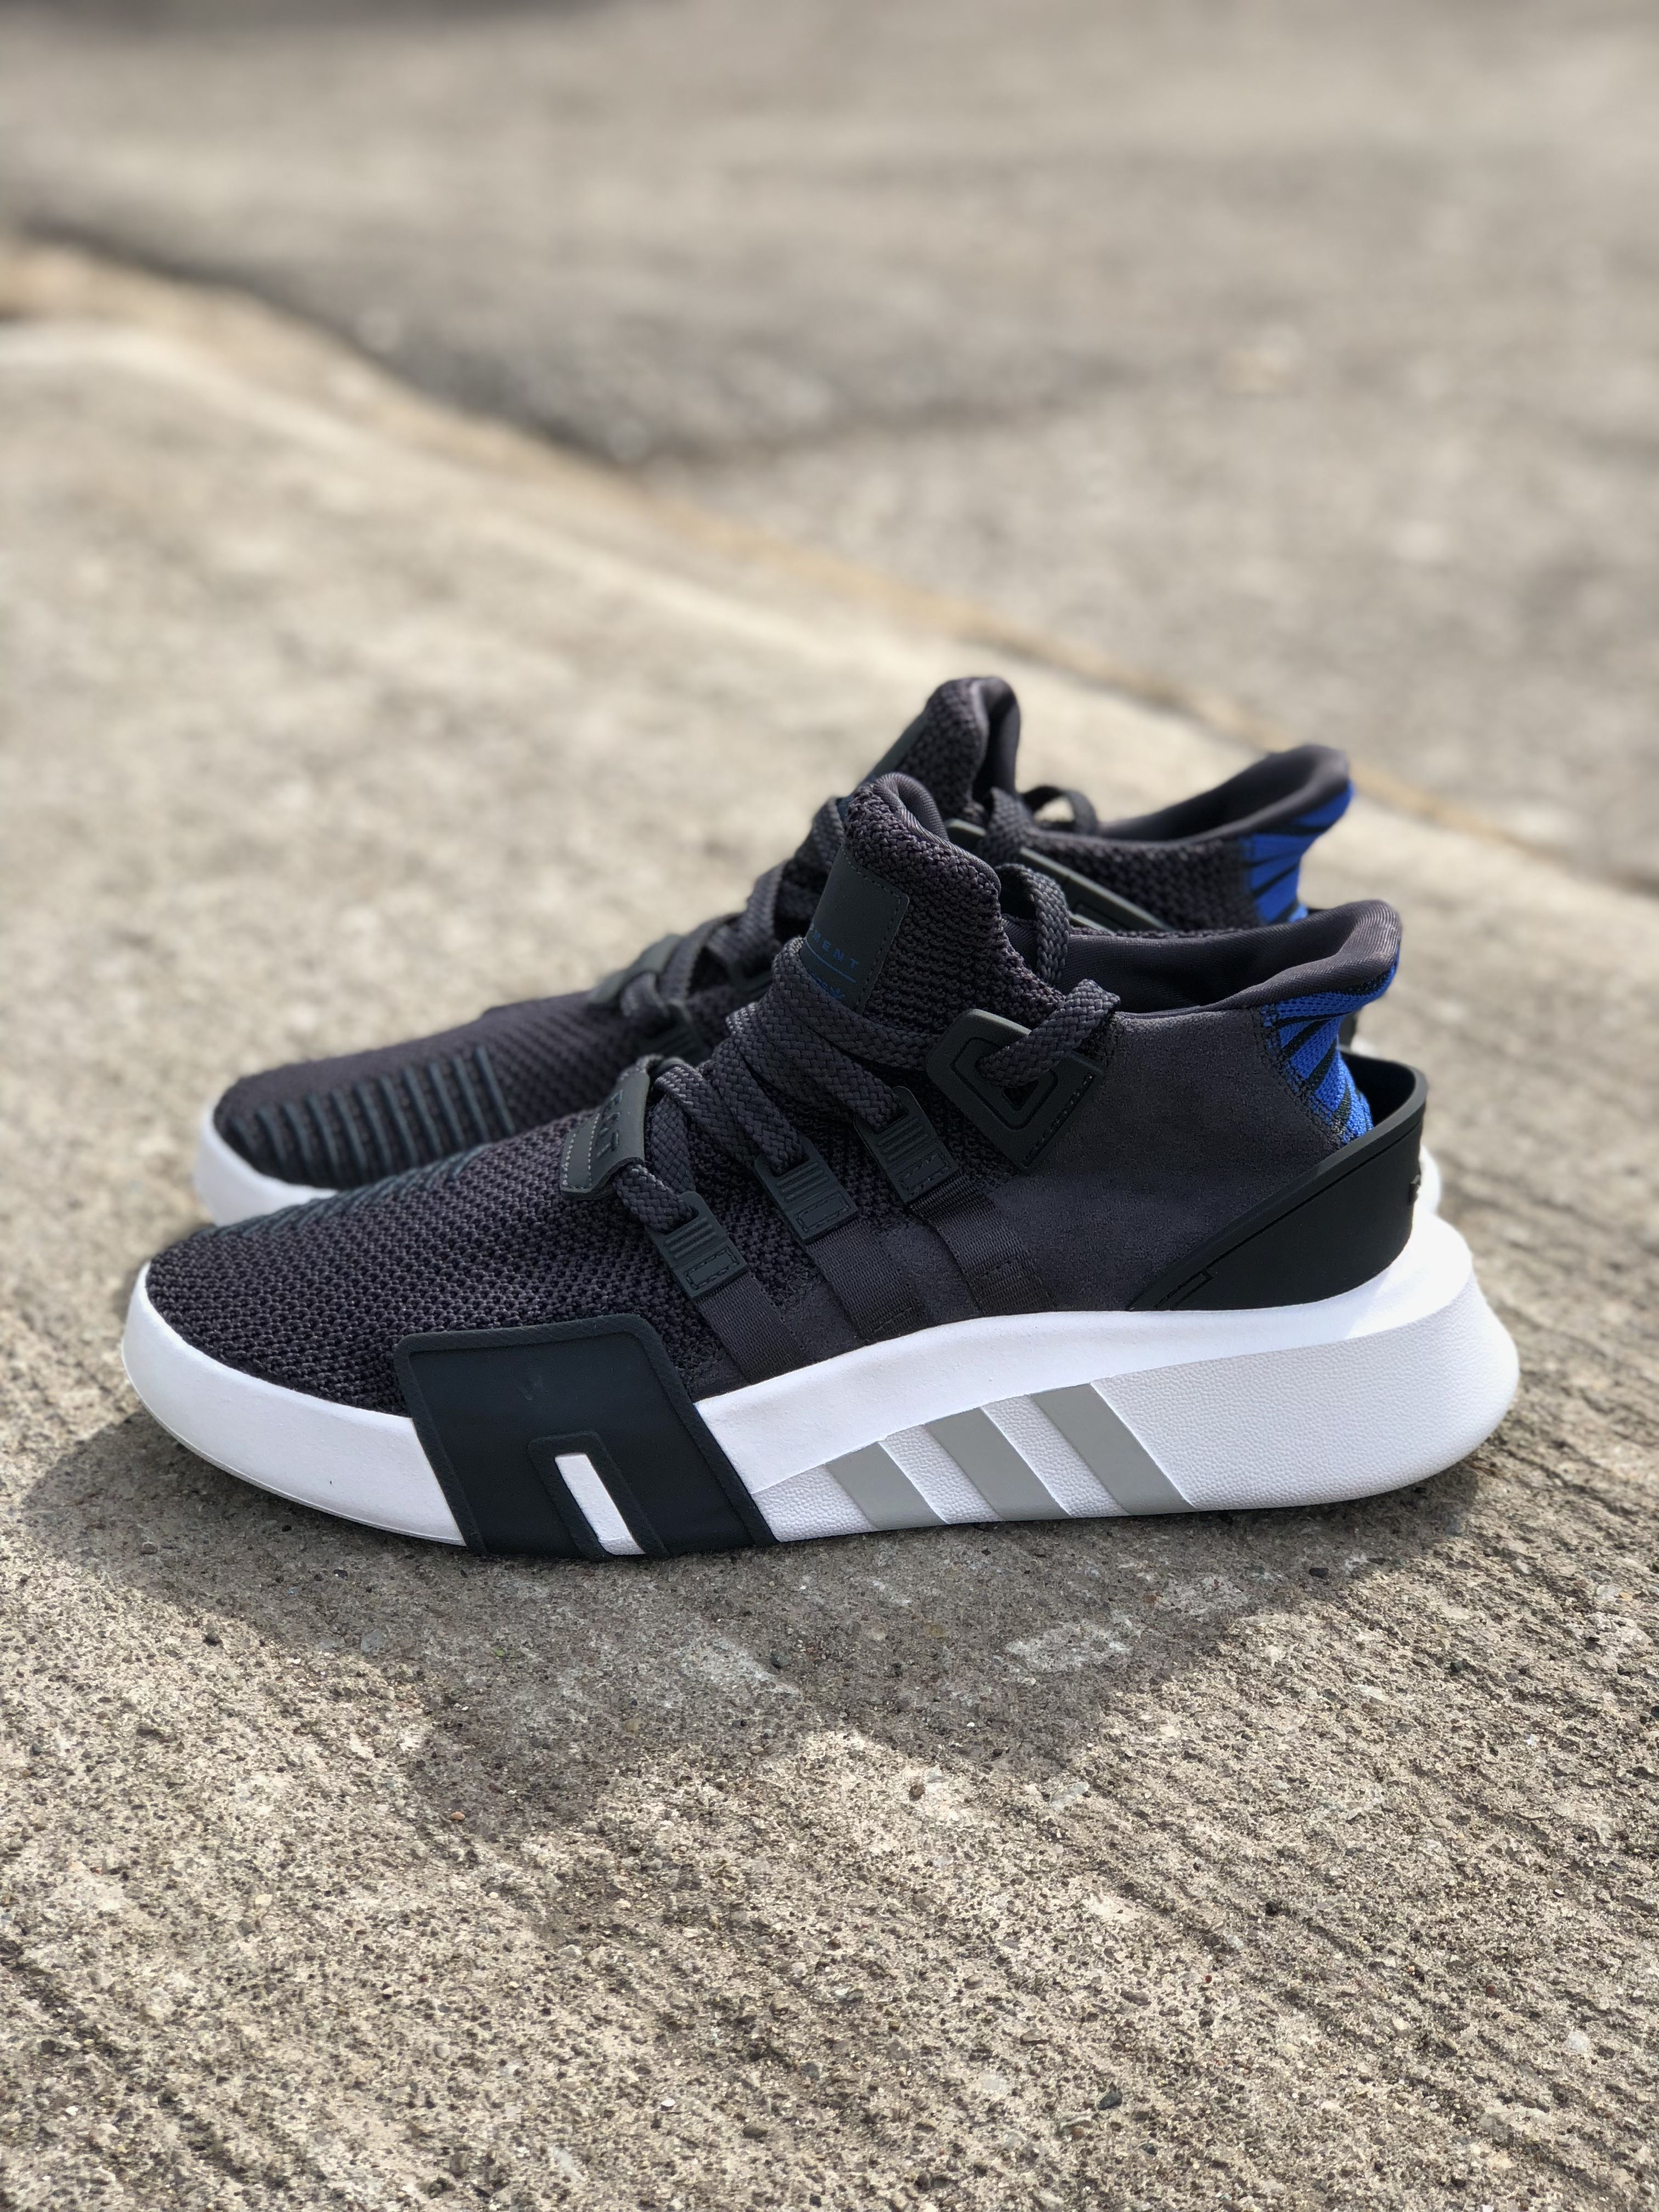 9ab70cf81447 Spring 2018 Collection Adidas Eqt Bask ADV